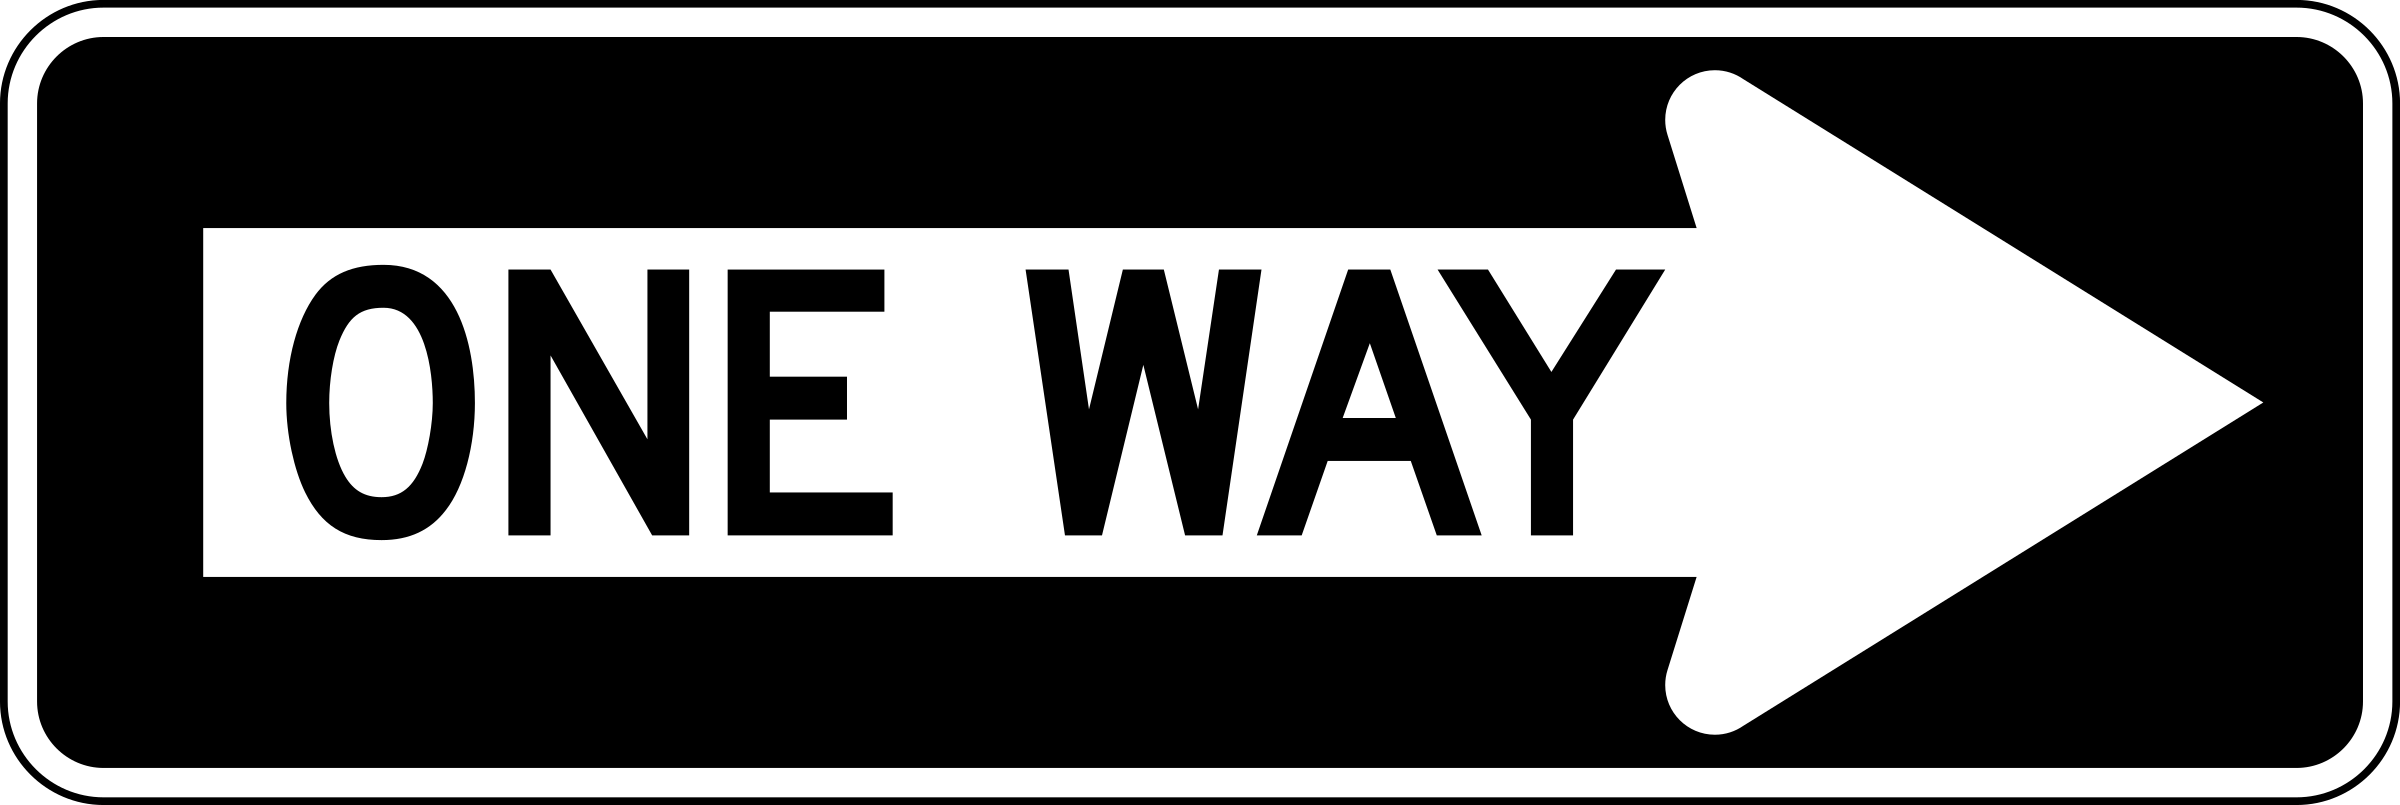 One Way Road Clipart.